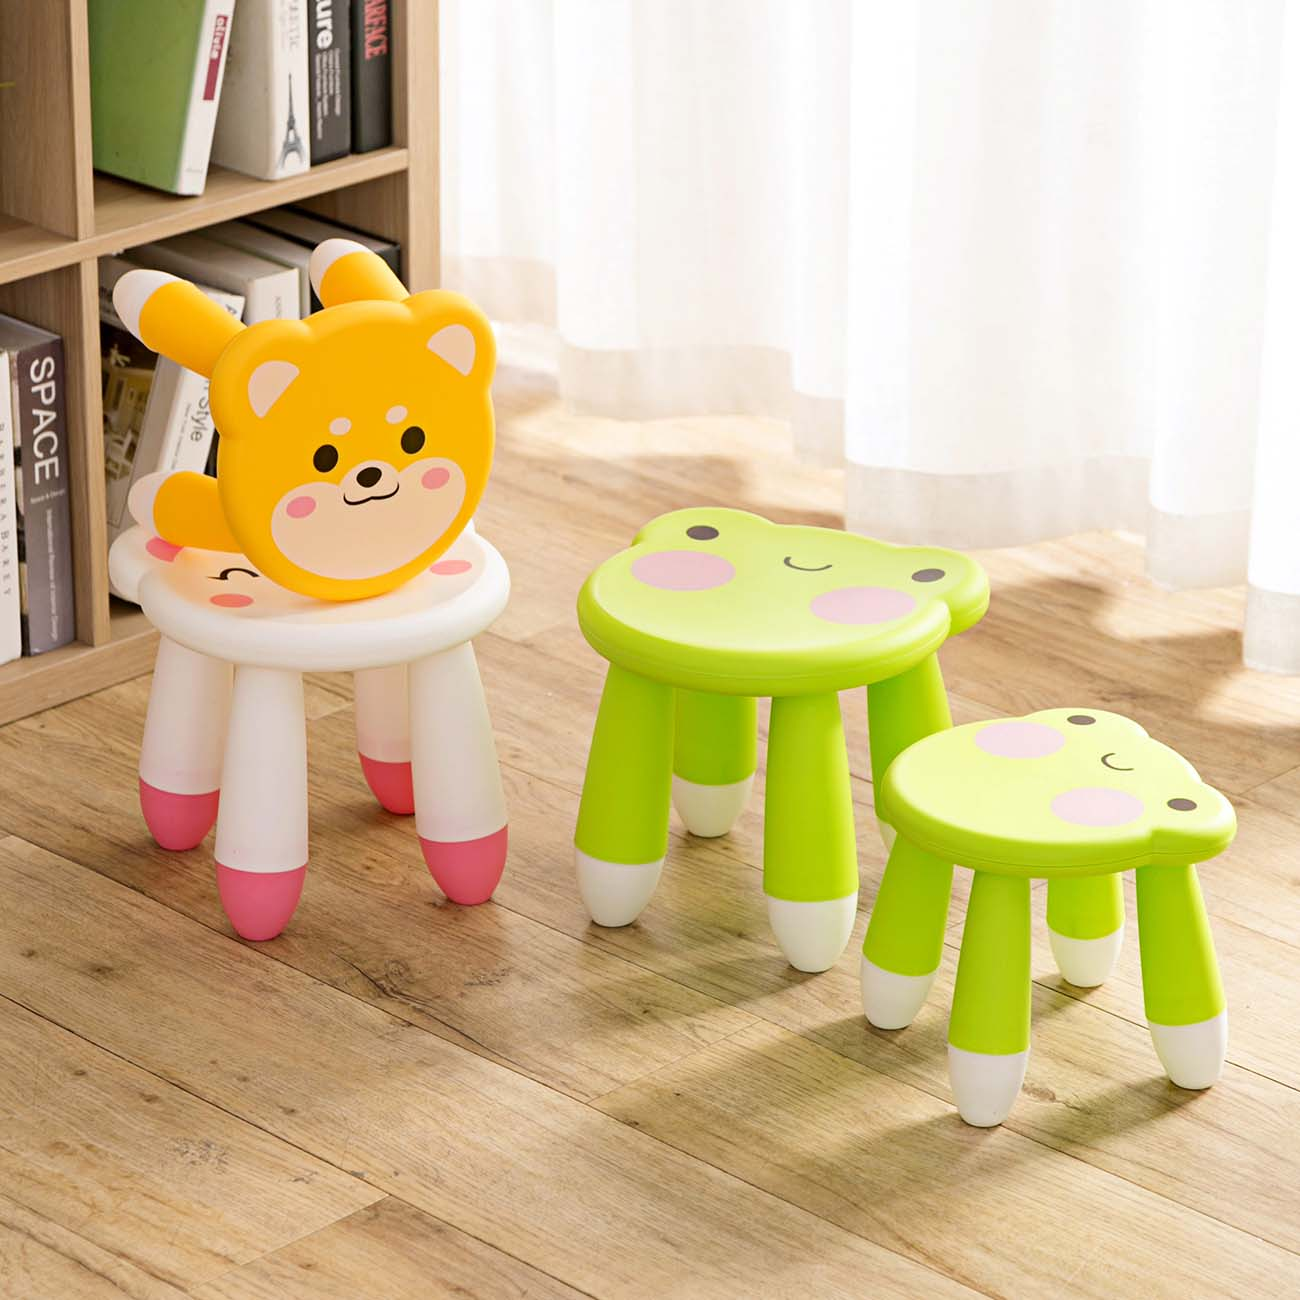 Carton Frog Kids Thicken Plastic Small Stool Living Room Adult Change Shoe Bench Bathroom Child Low Bench Baby Study Stool